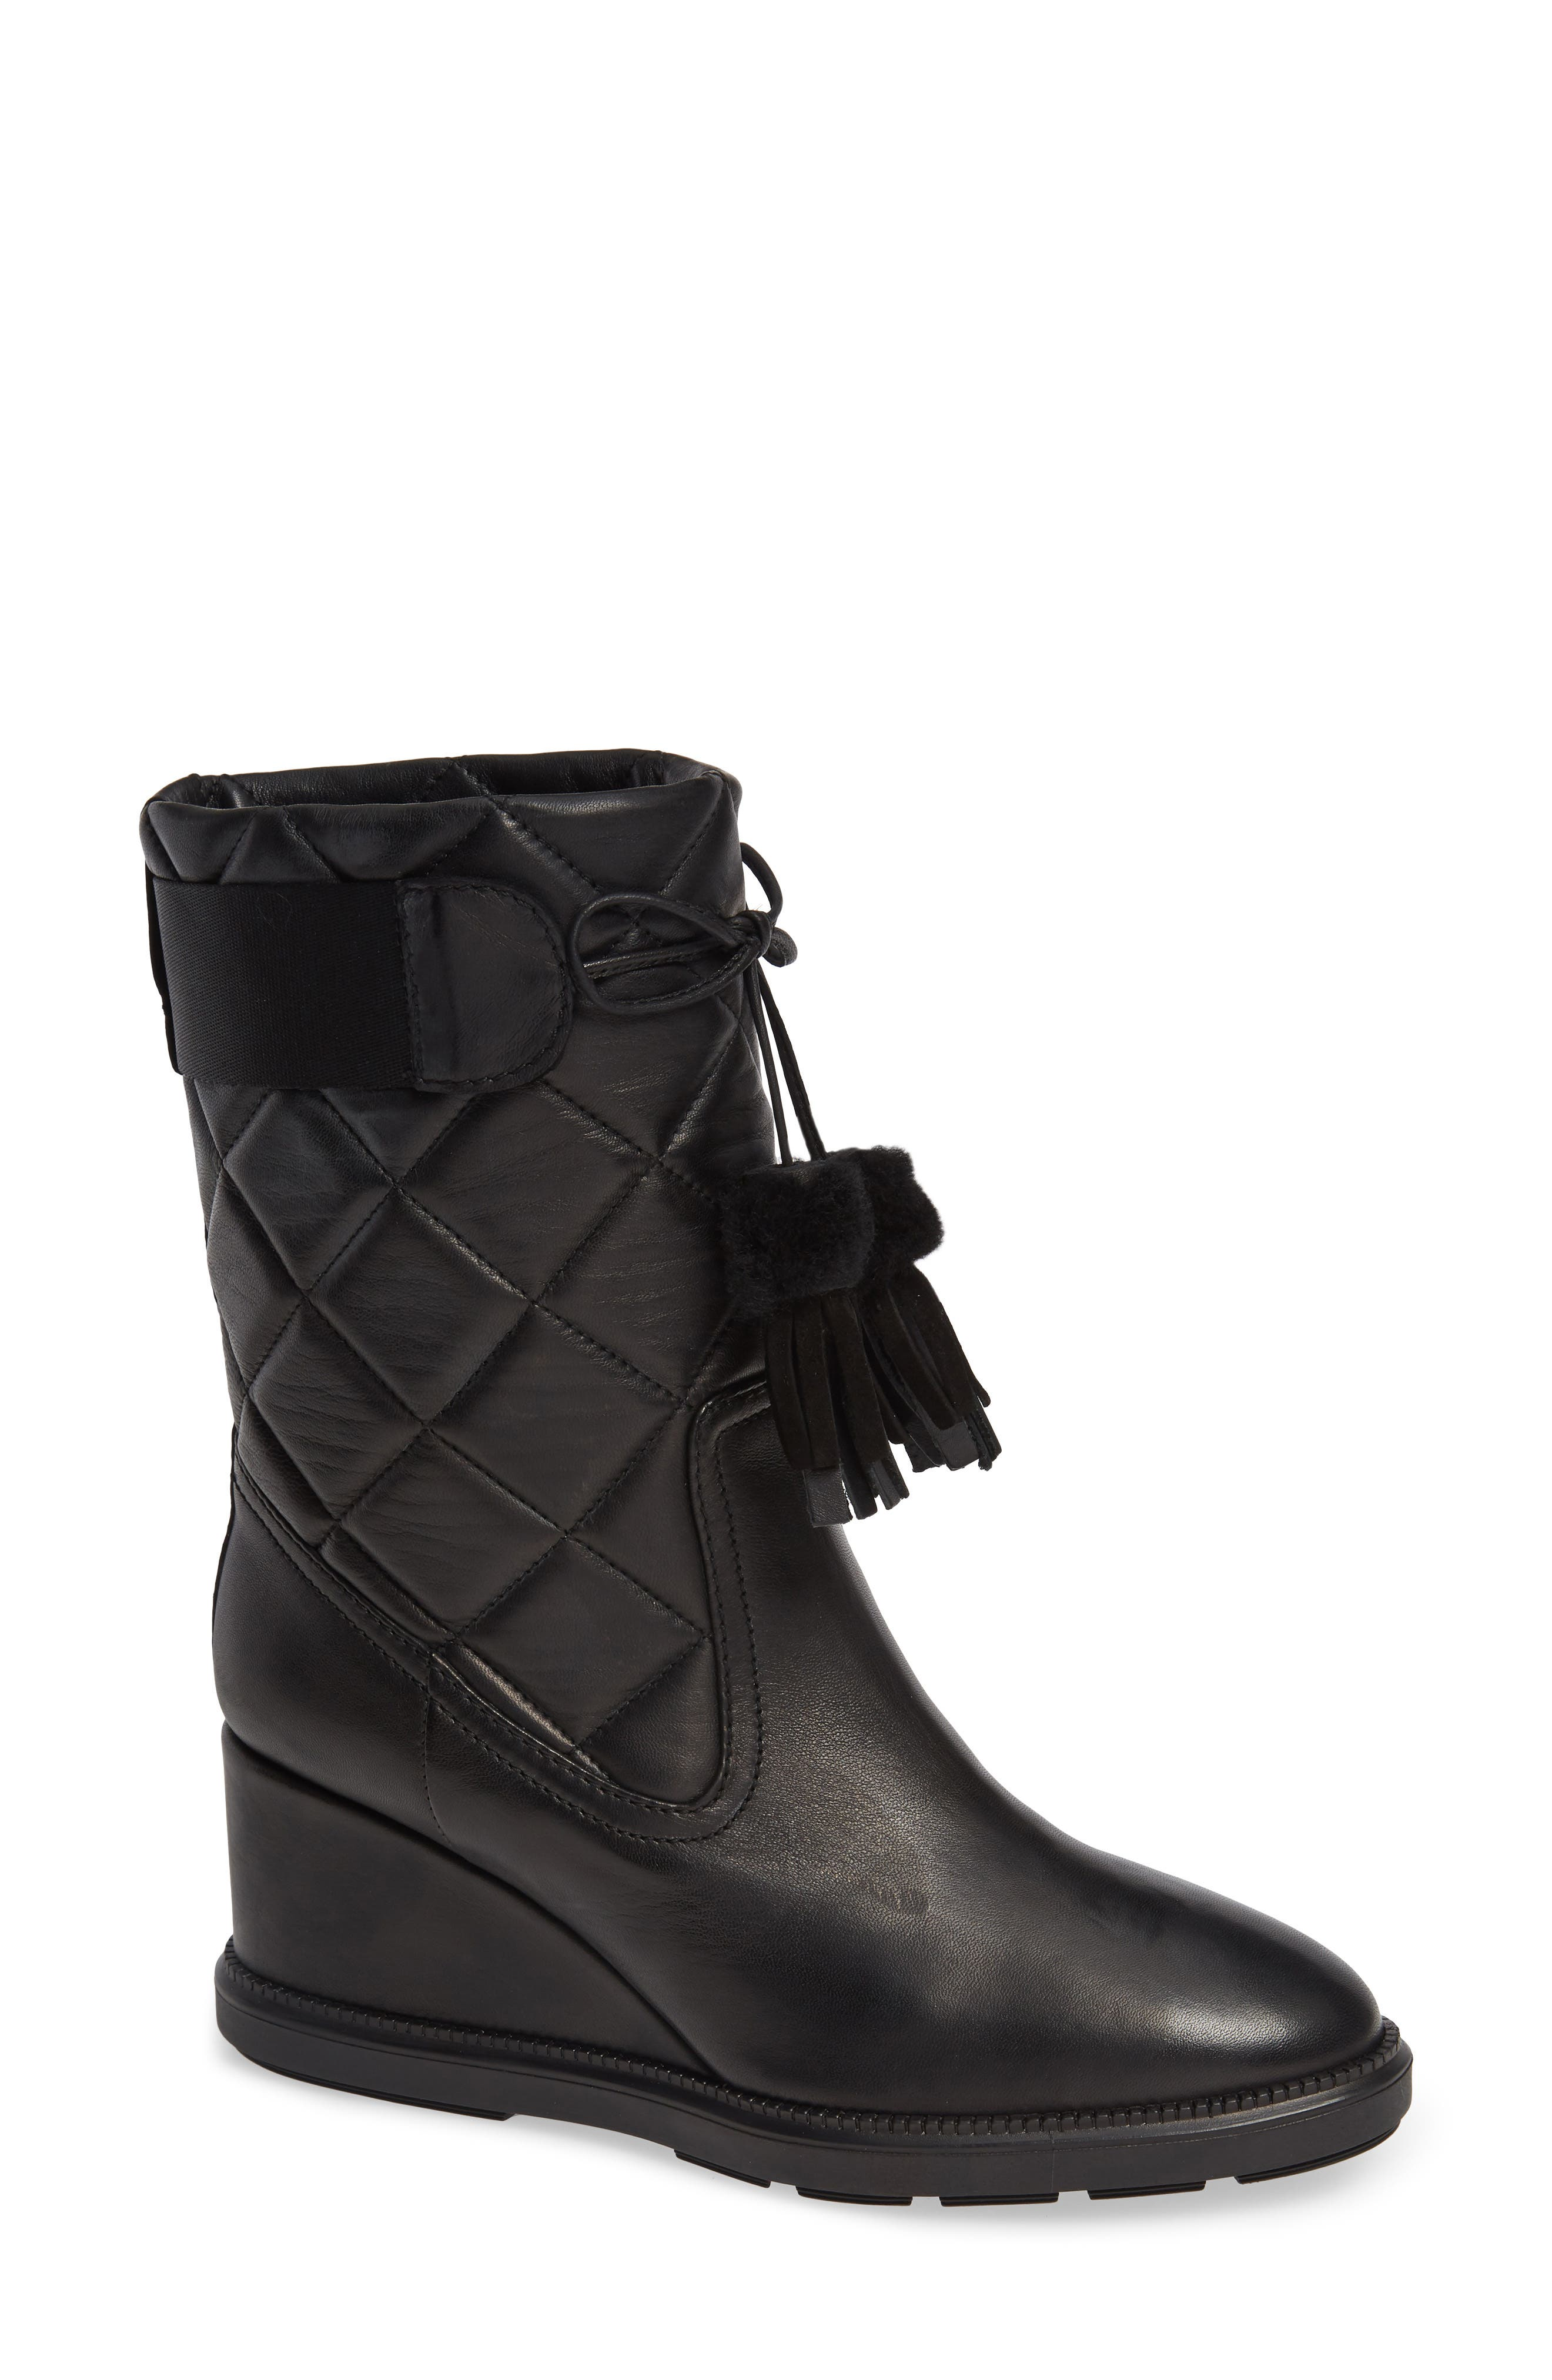 Caliana Water Resistant Genuine Shearling Lined Boot, Main, color, BLACK NAPPA